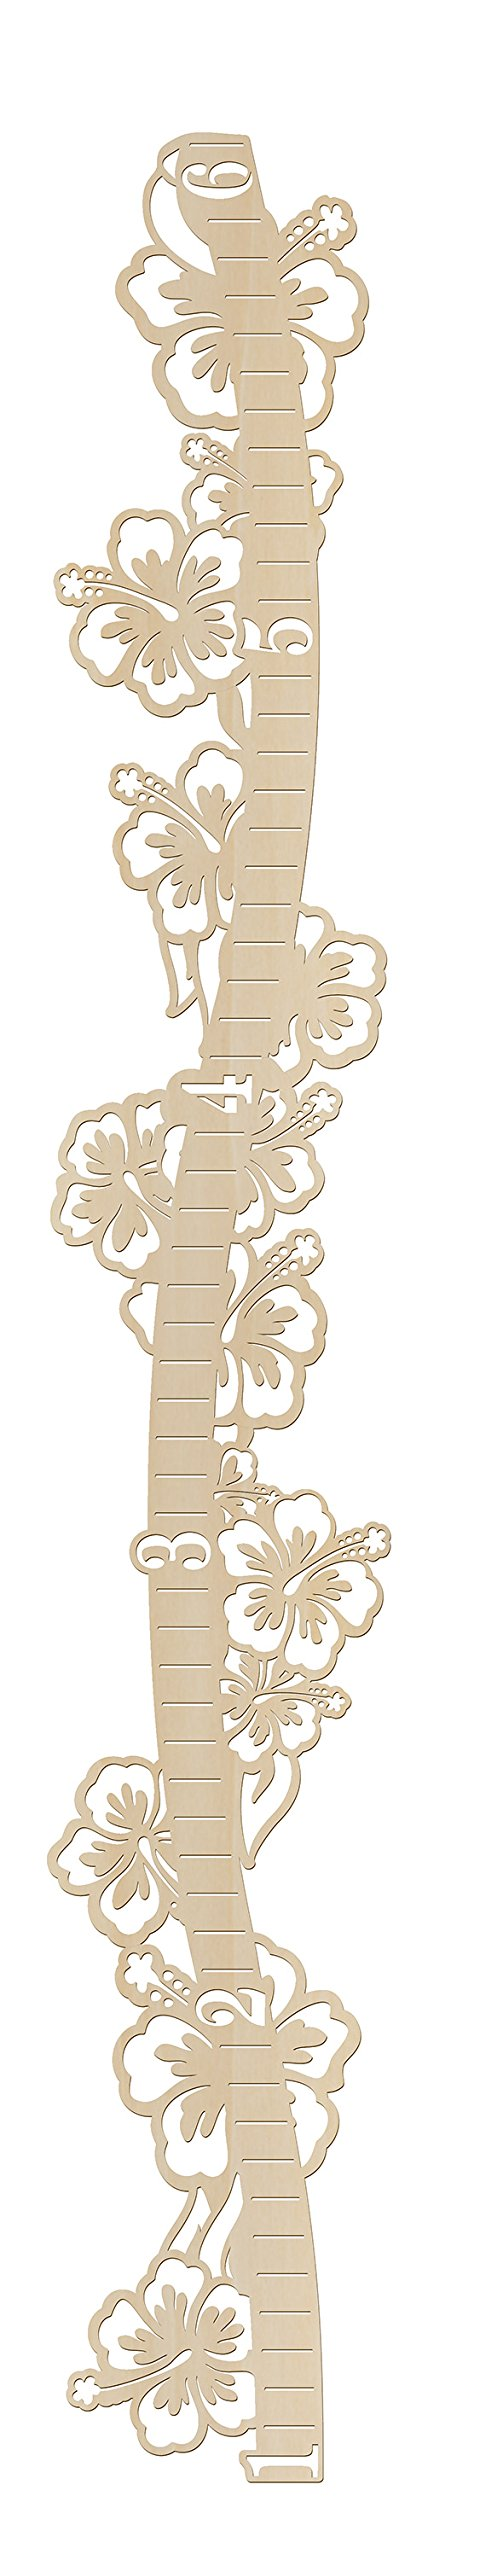 DIY Wooden Hibiscus Growth Chart